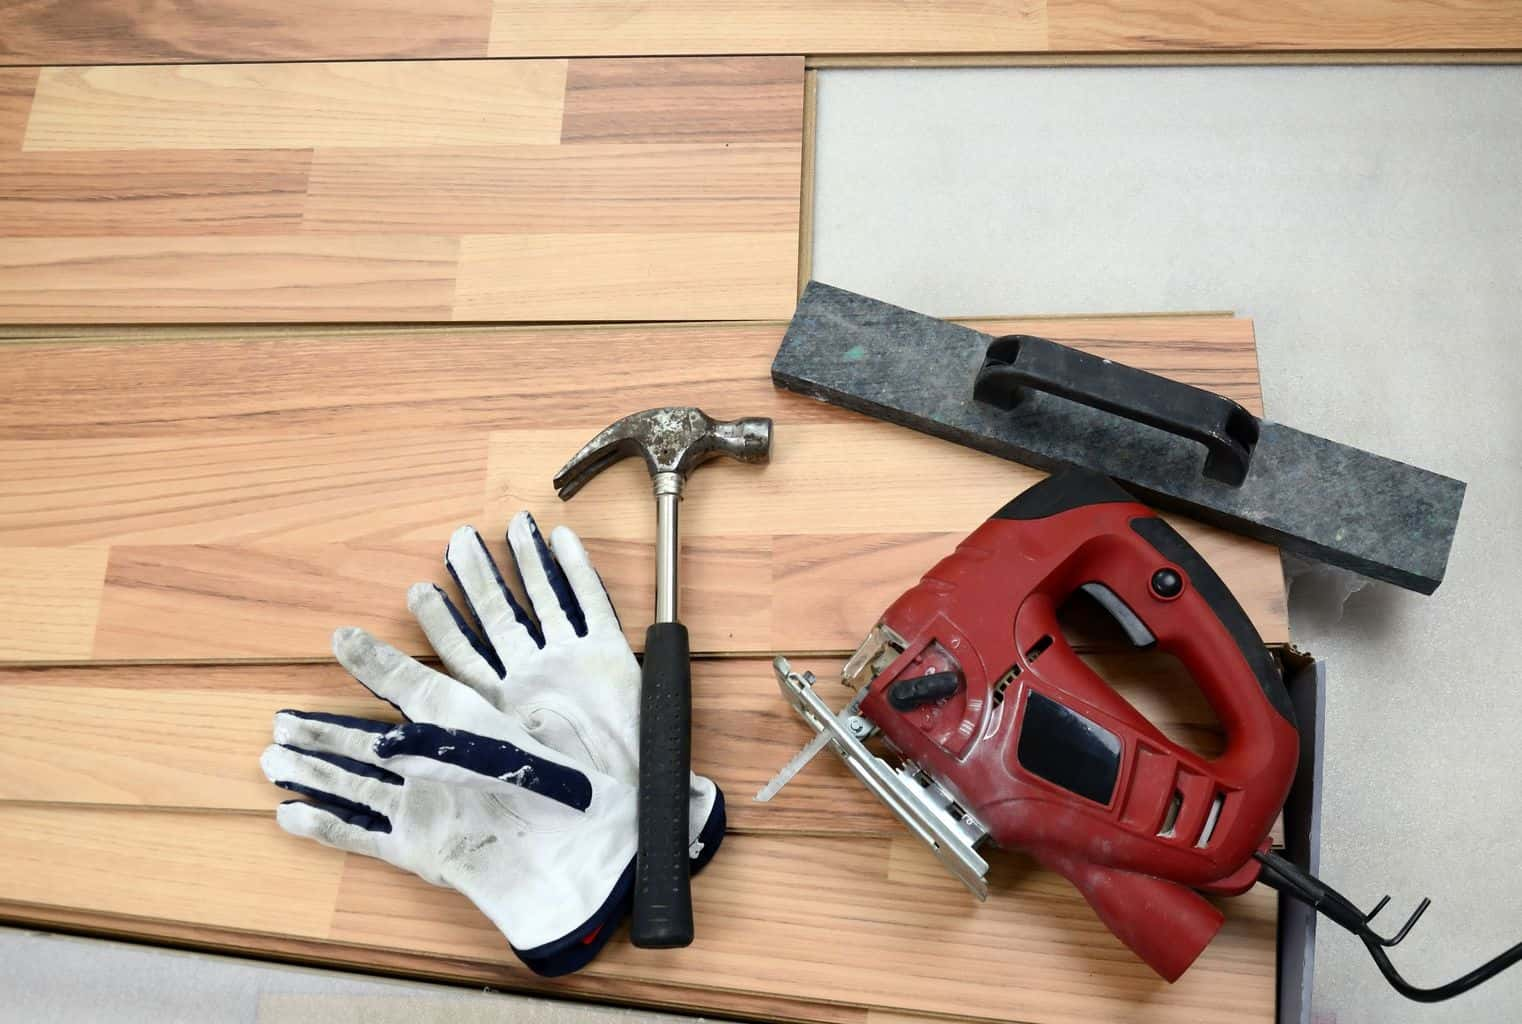 However The Process For Cutting Laminate Flooring Still Isn T Too Challenging All You Need Is A Few Key Tools And Some Time